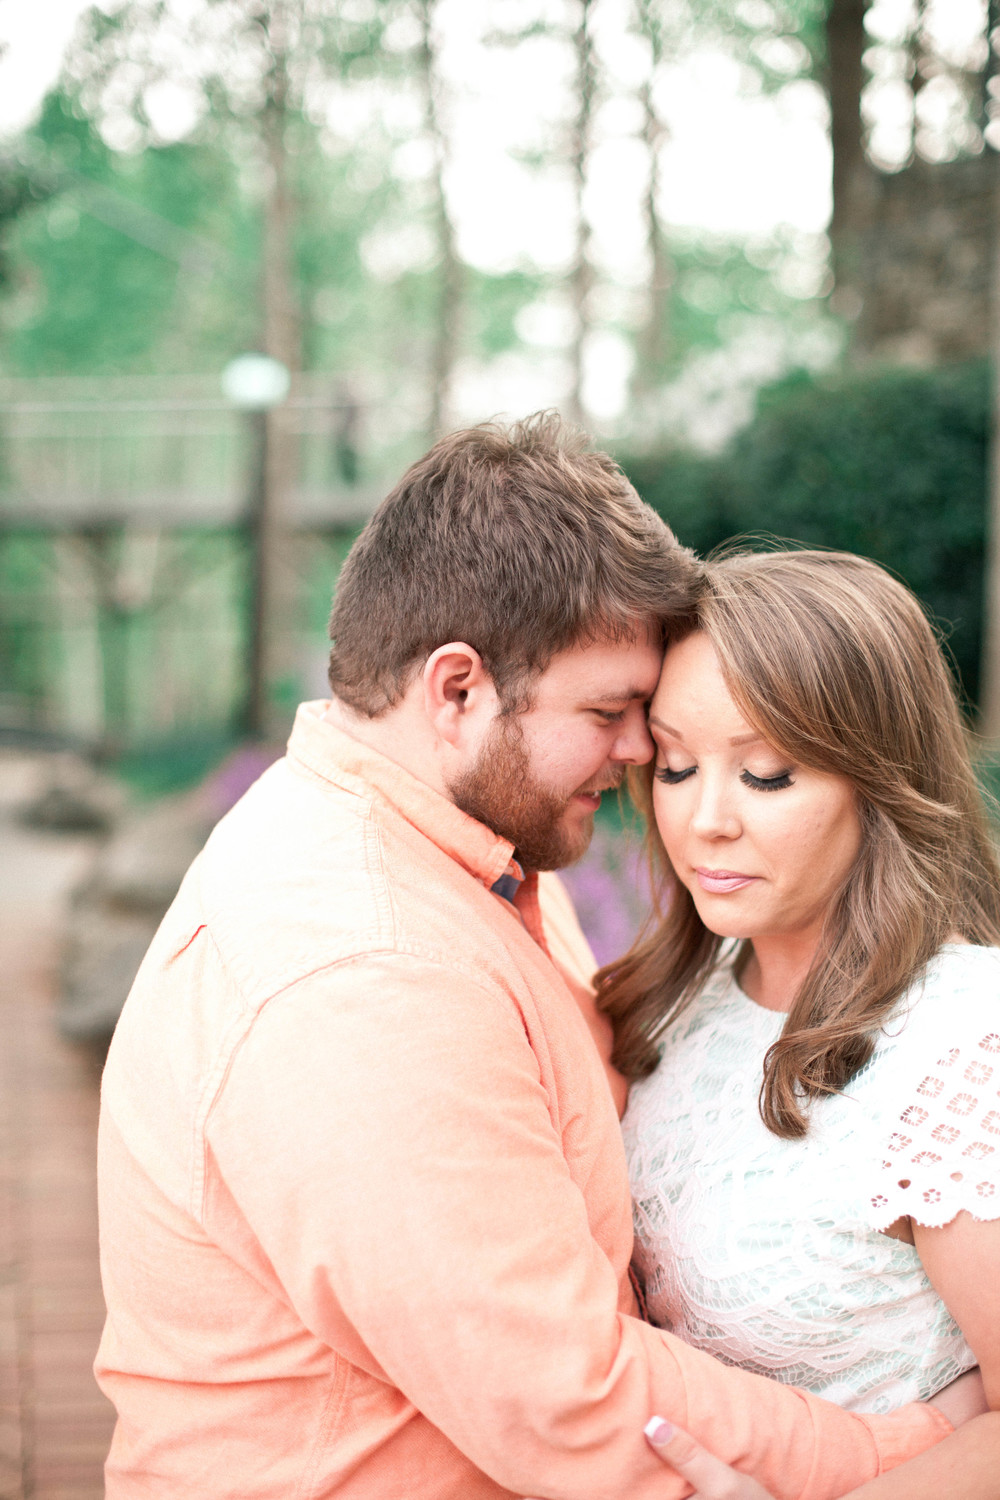 zach_gabbie_engagement_poured_out_photography-29.jpg